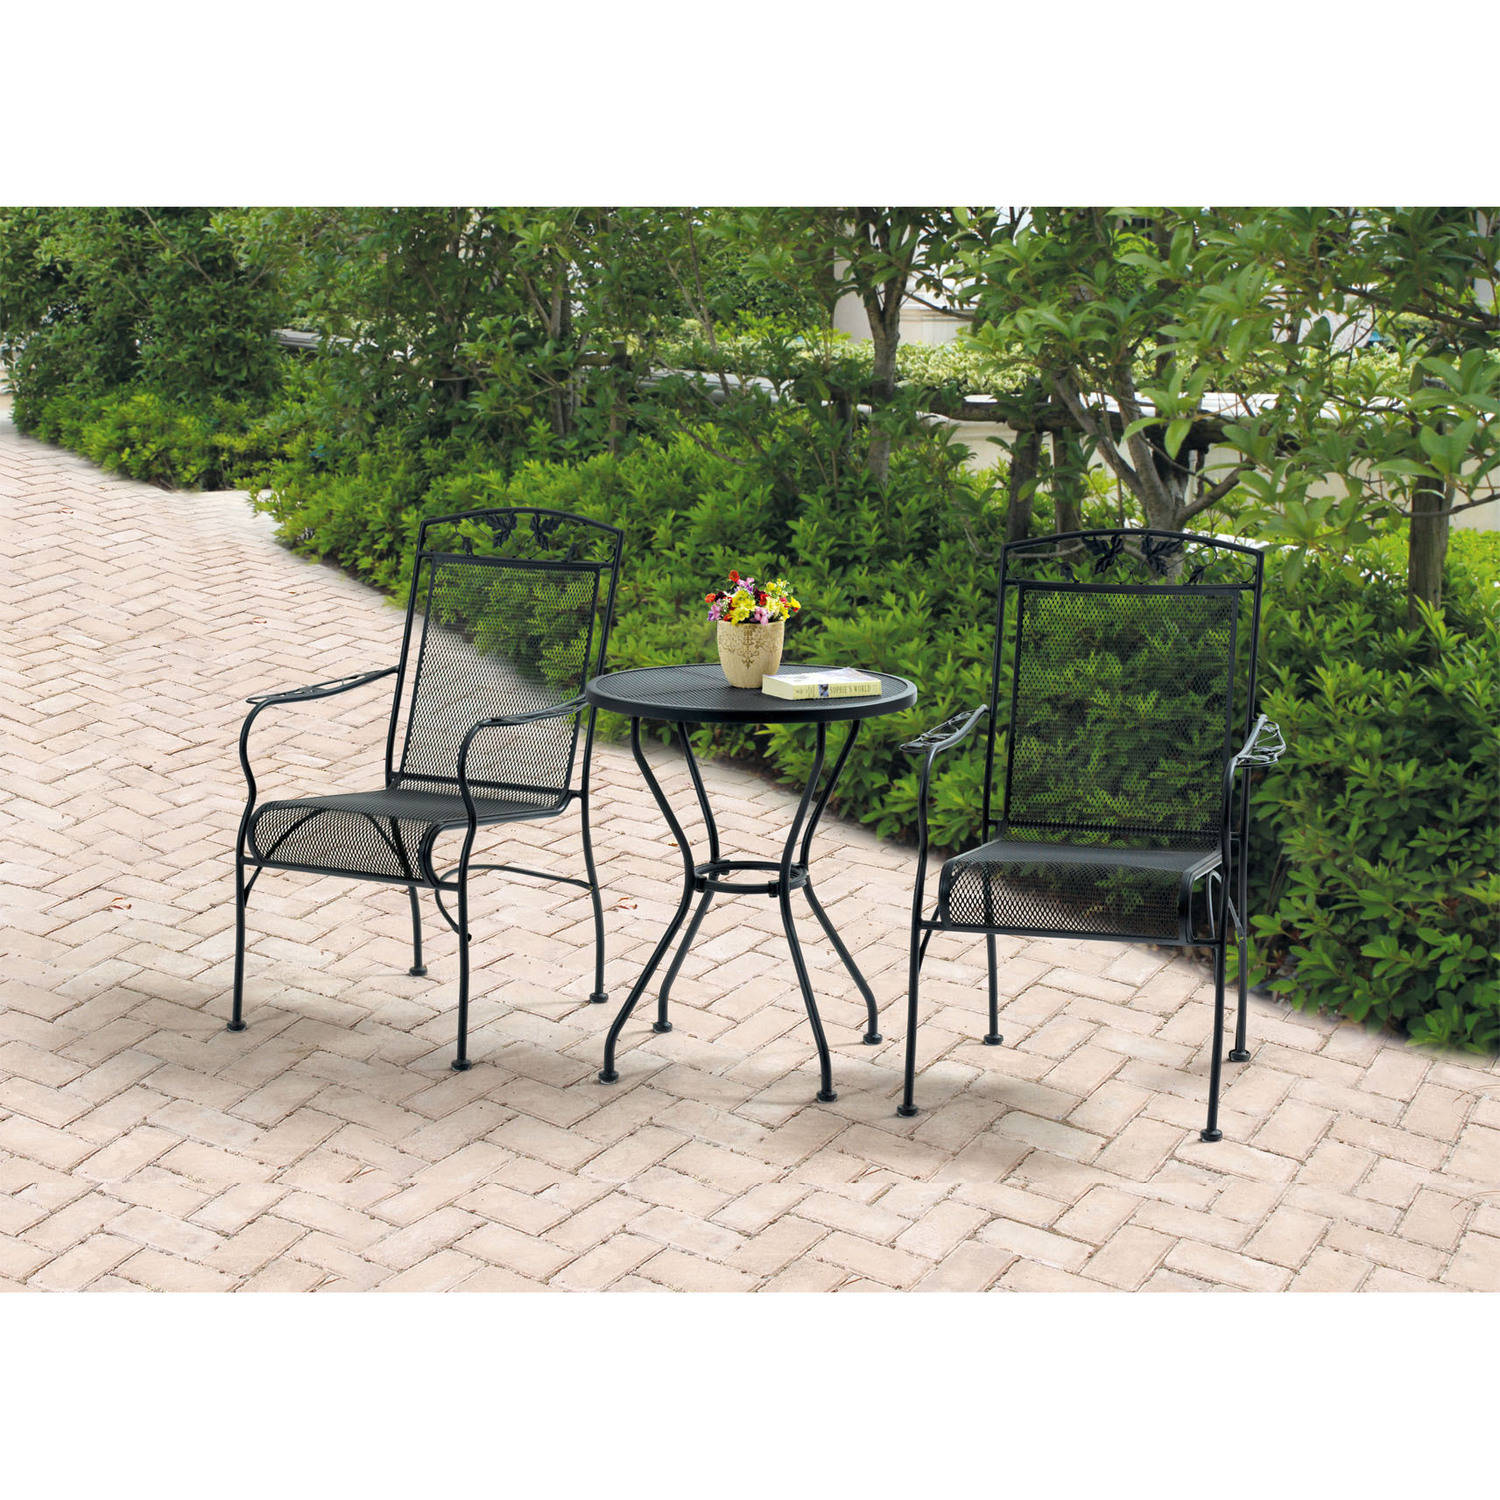 Iron Patio Furniture wrought iron patio furniture